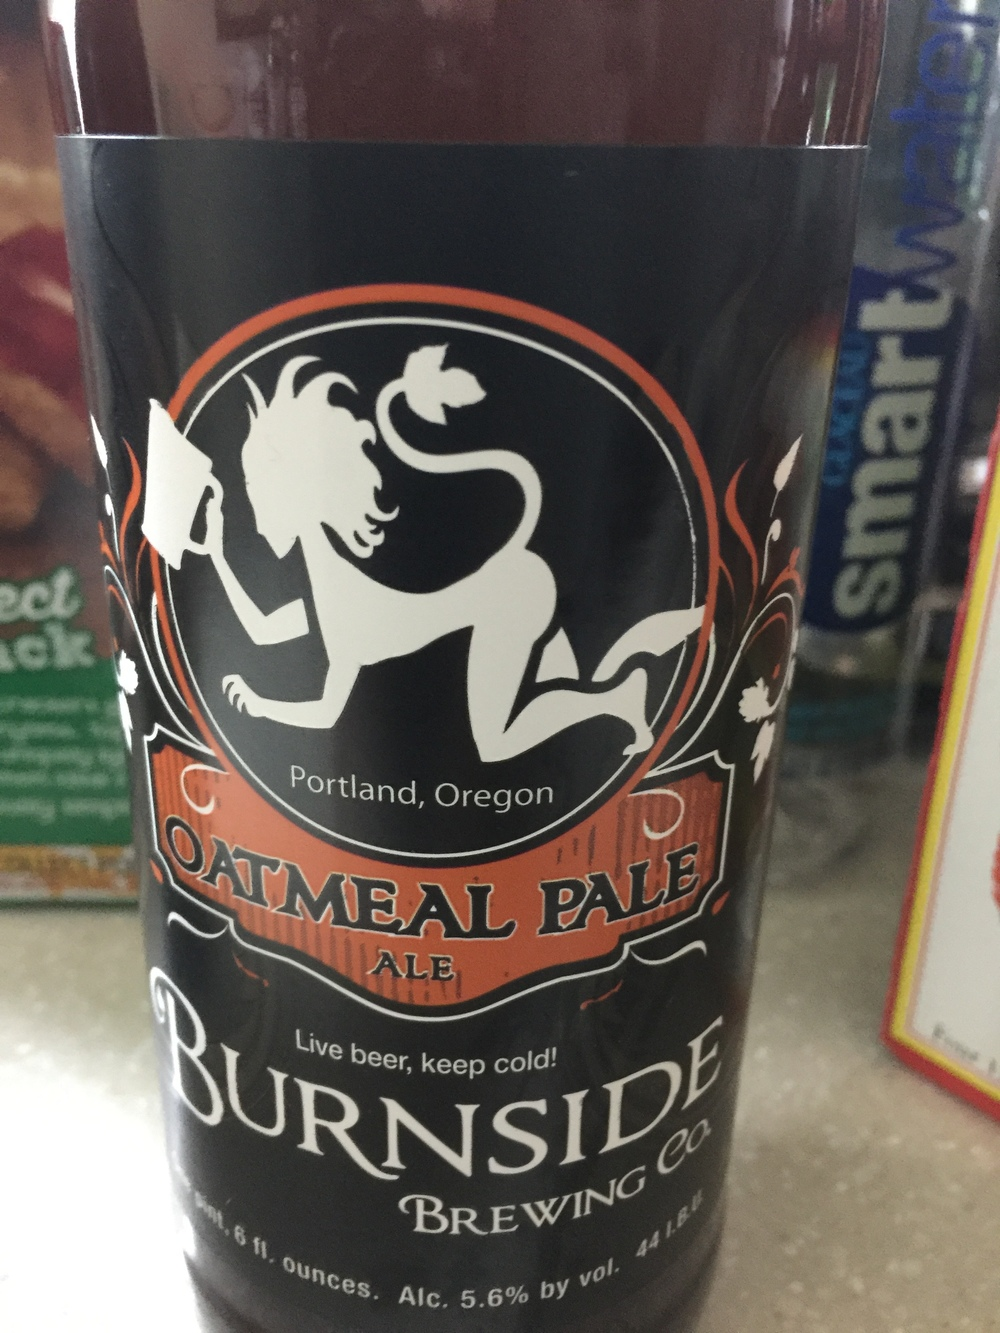 Burnside brewing Oatmeal Pale Ale    A good beer to guage a friend or date's taste in beer. A very universal beer, acceptable to pretty much any palate. This is the type of beer that you can drink whilst having an intellectual, deep, and substantive conversation with people.  7.75/10